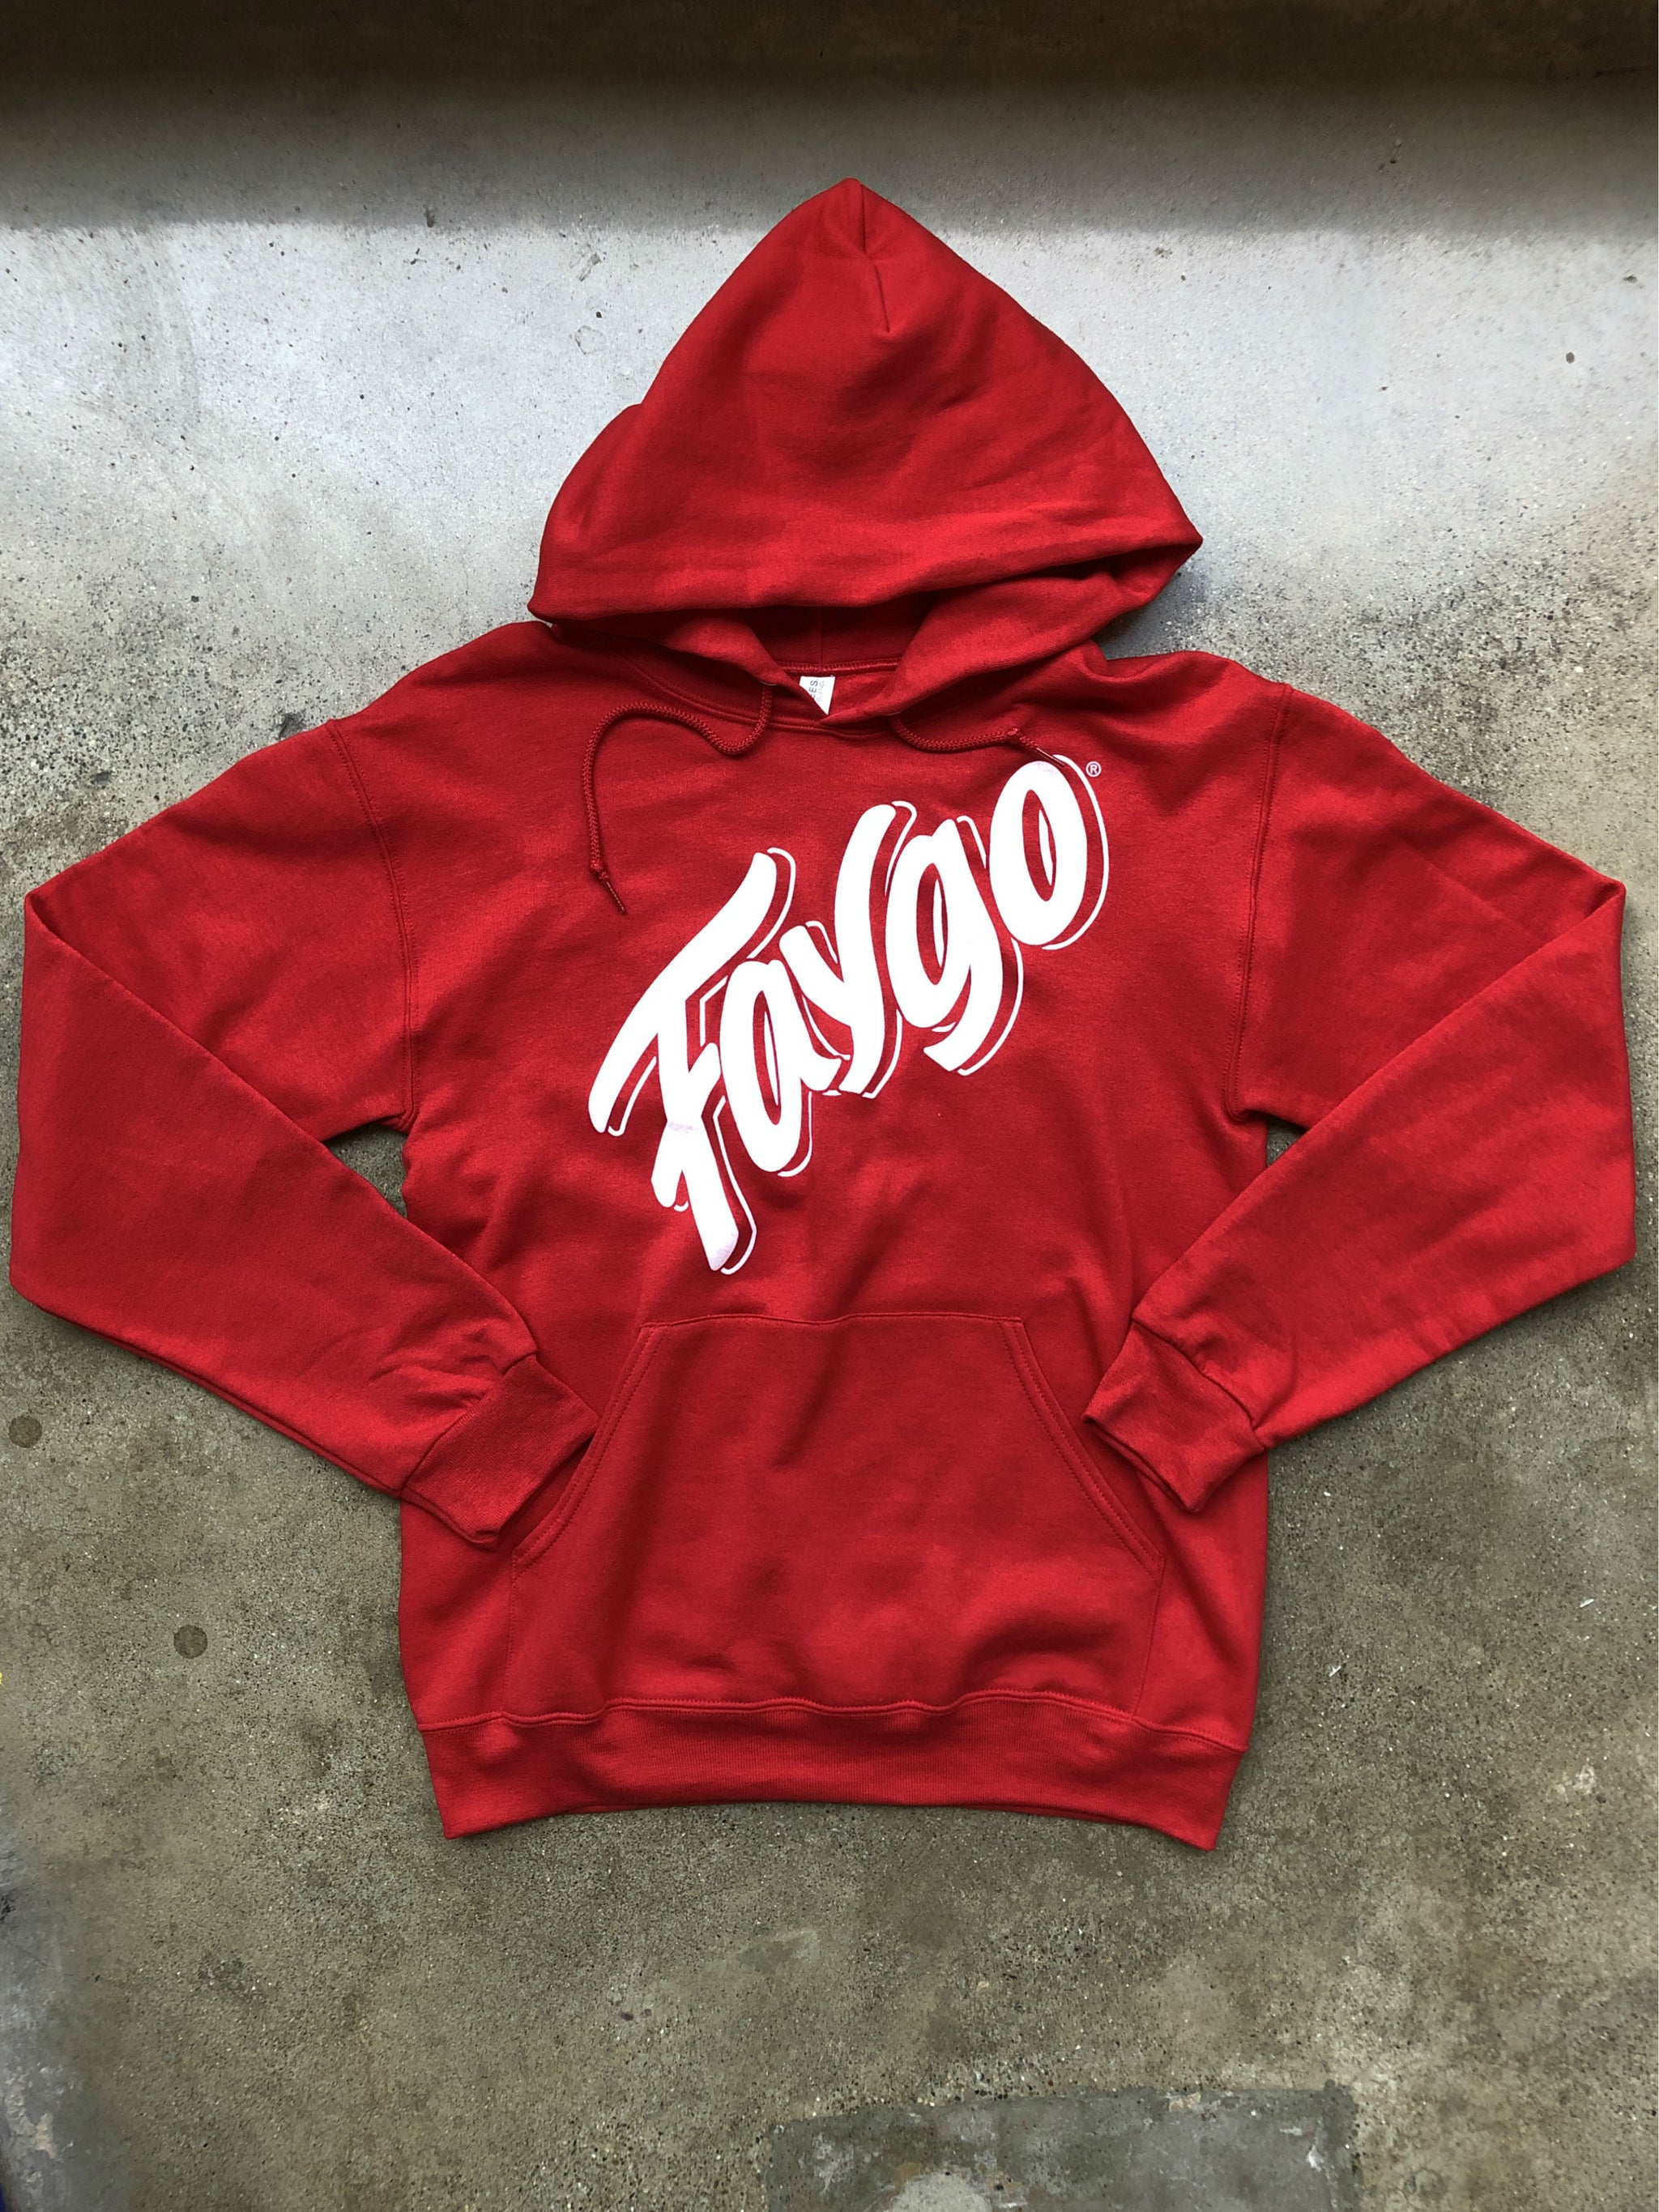 Faygo Script Pullover Hooded Sweatshirt / Red / Unisex - Pure Detroit